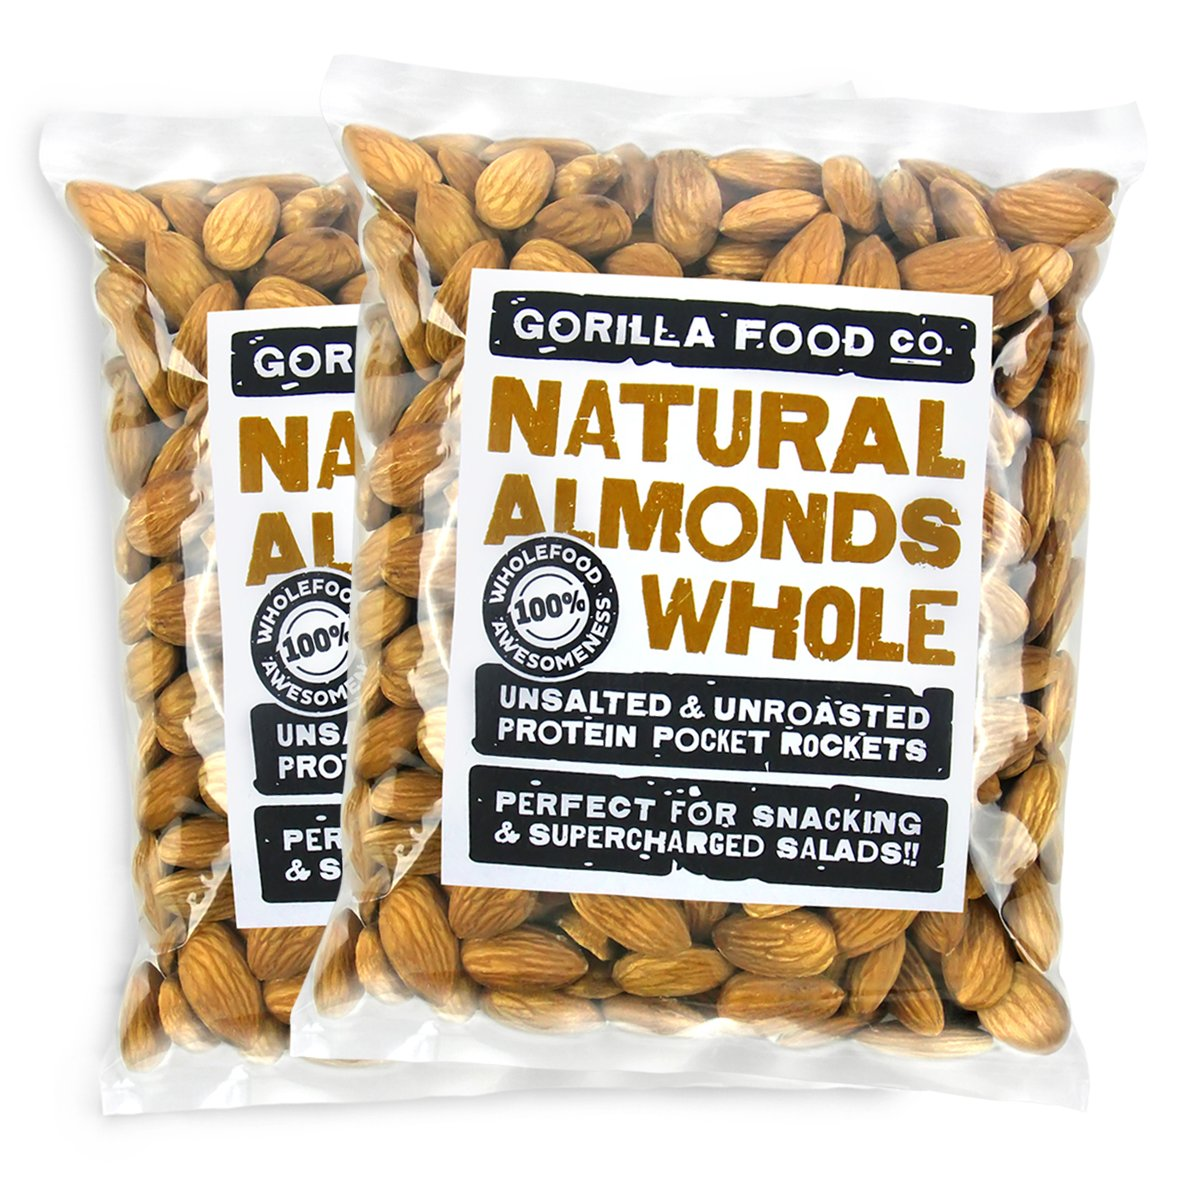 Gorilla Food Gifts Free shipping New Co. Premium California Whole - Almonds Unsalted Raw